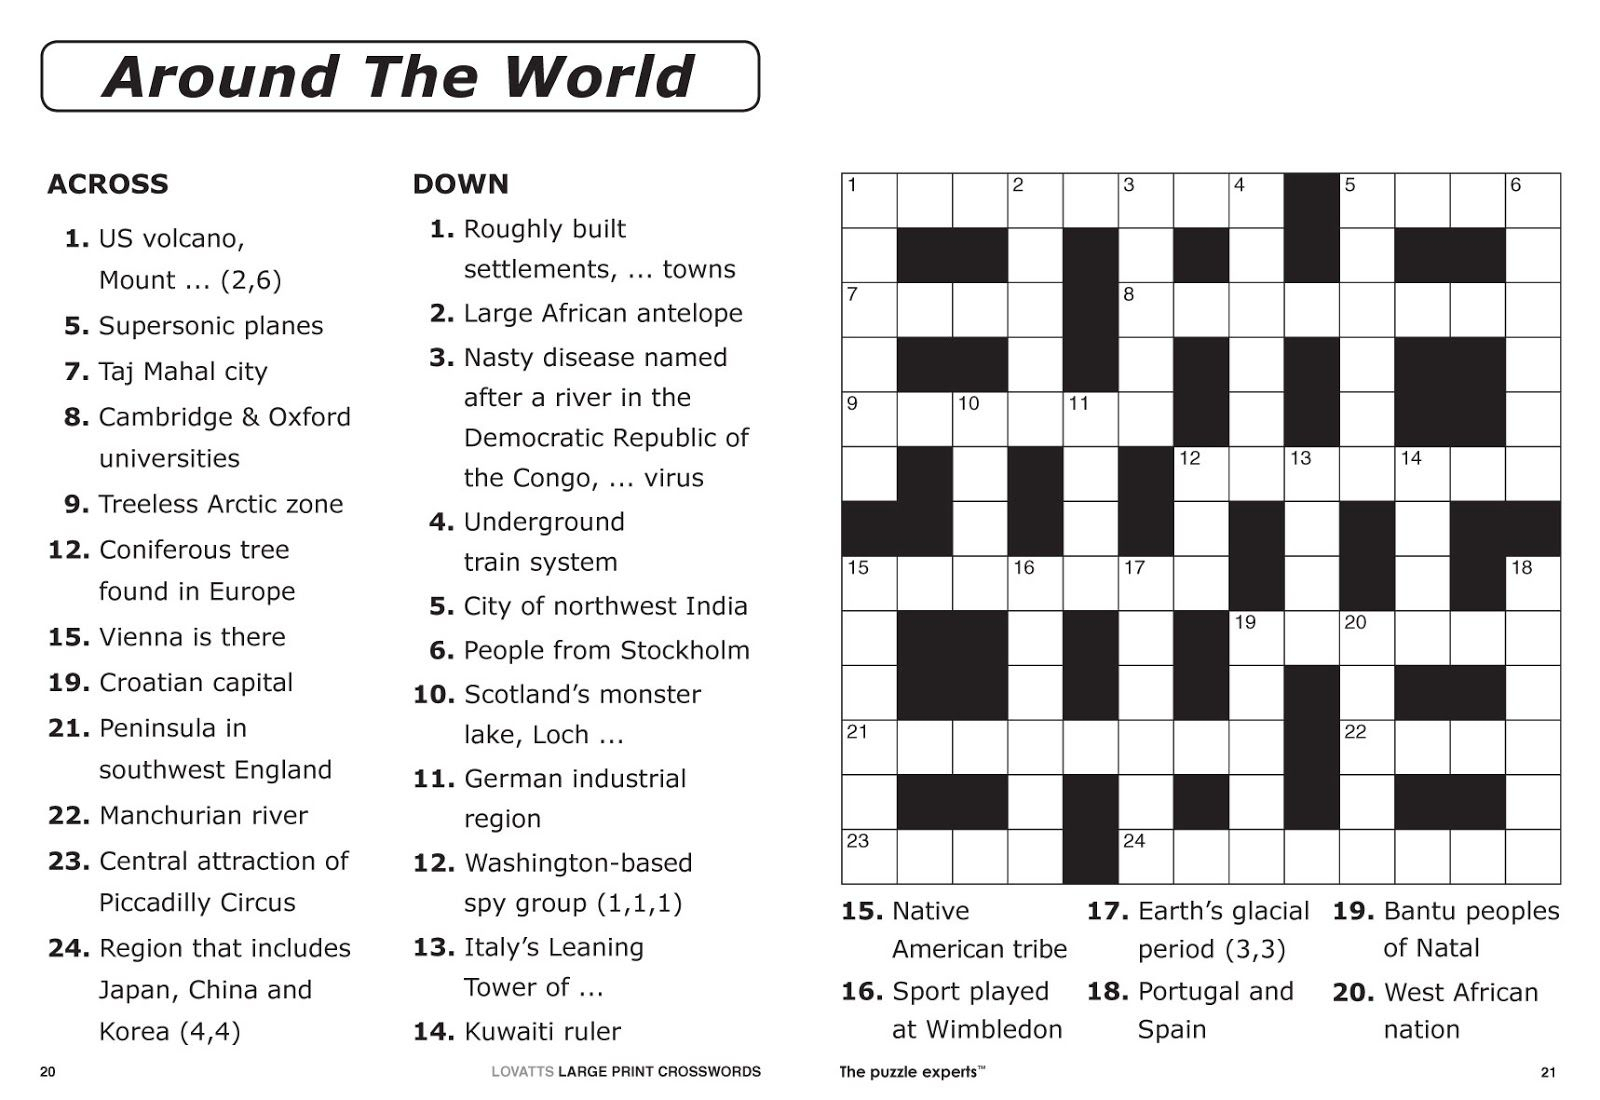 Free Printable Large Print Crossword Puzzles | M3U8 - Printable Puzzles For 15 Year Olds